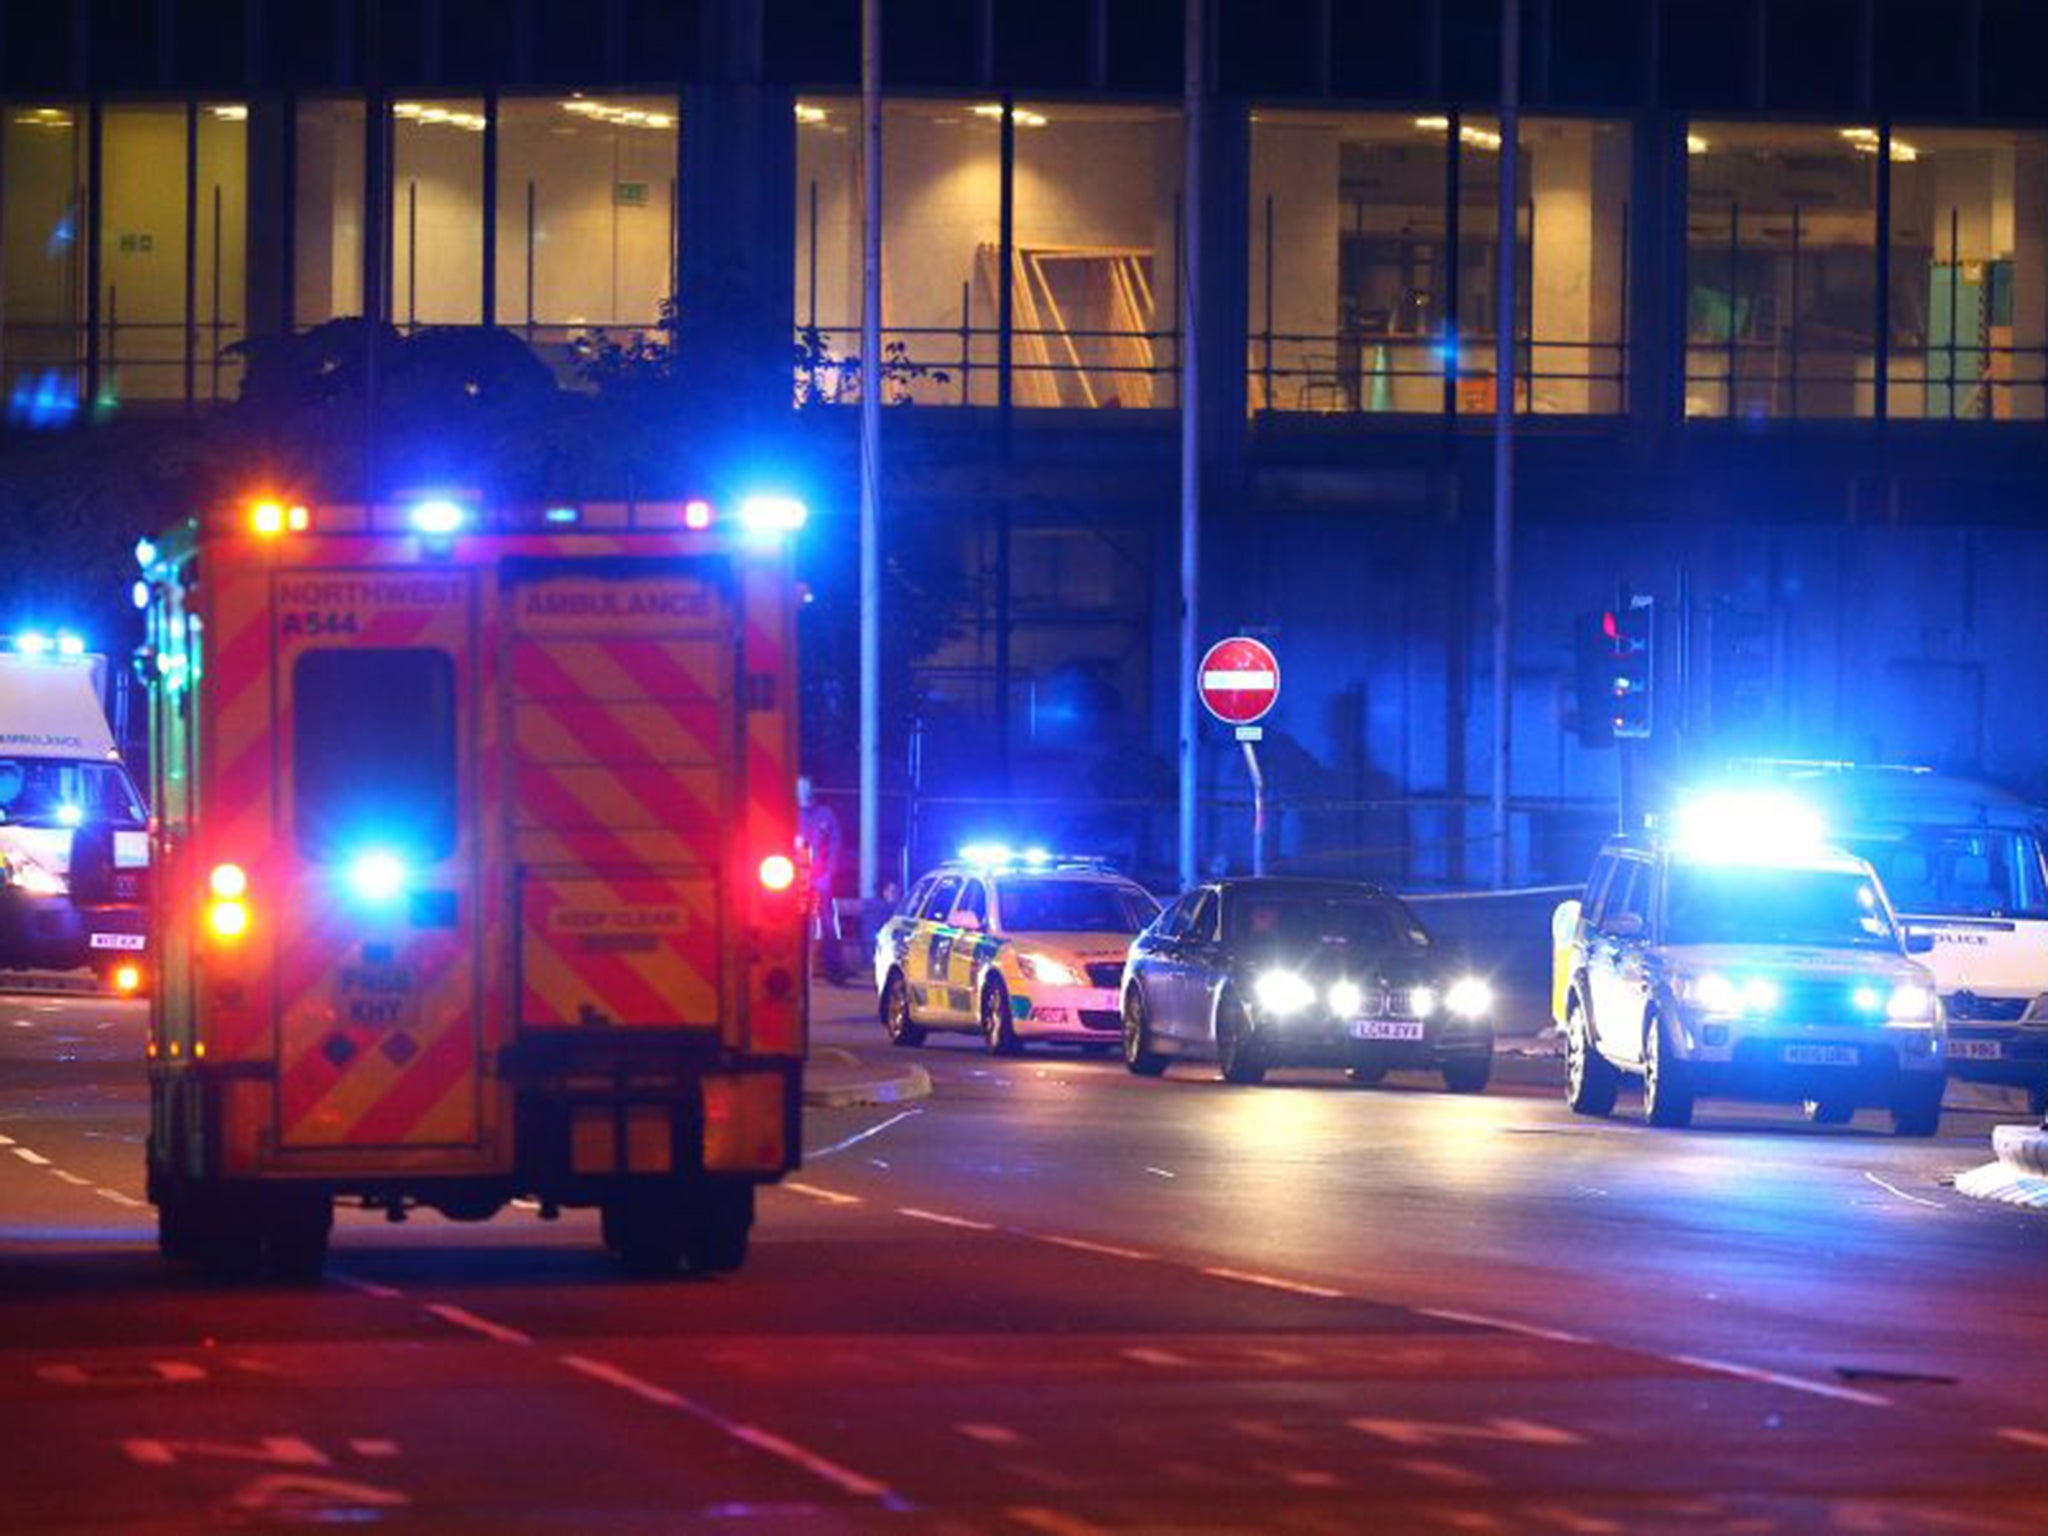 fad2a8da742f Manchester Arena - latest news, breaking stories and comment - The ...